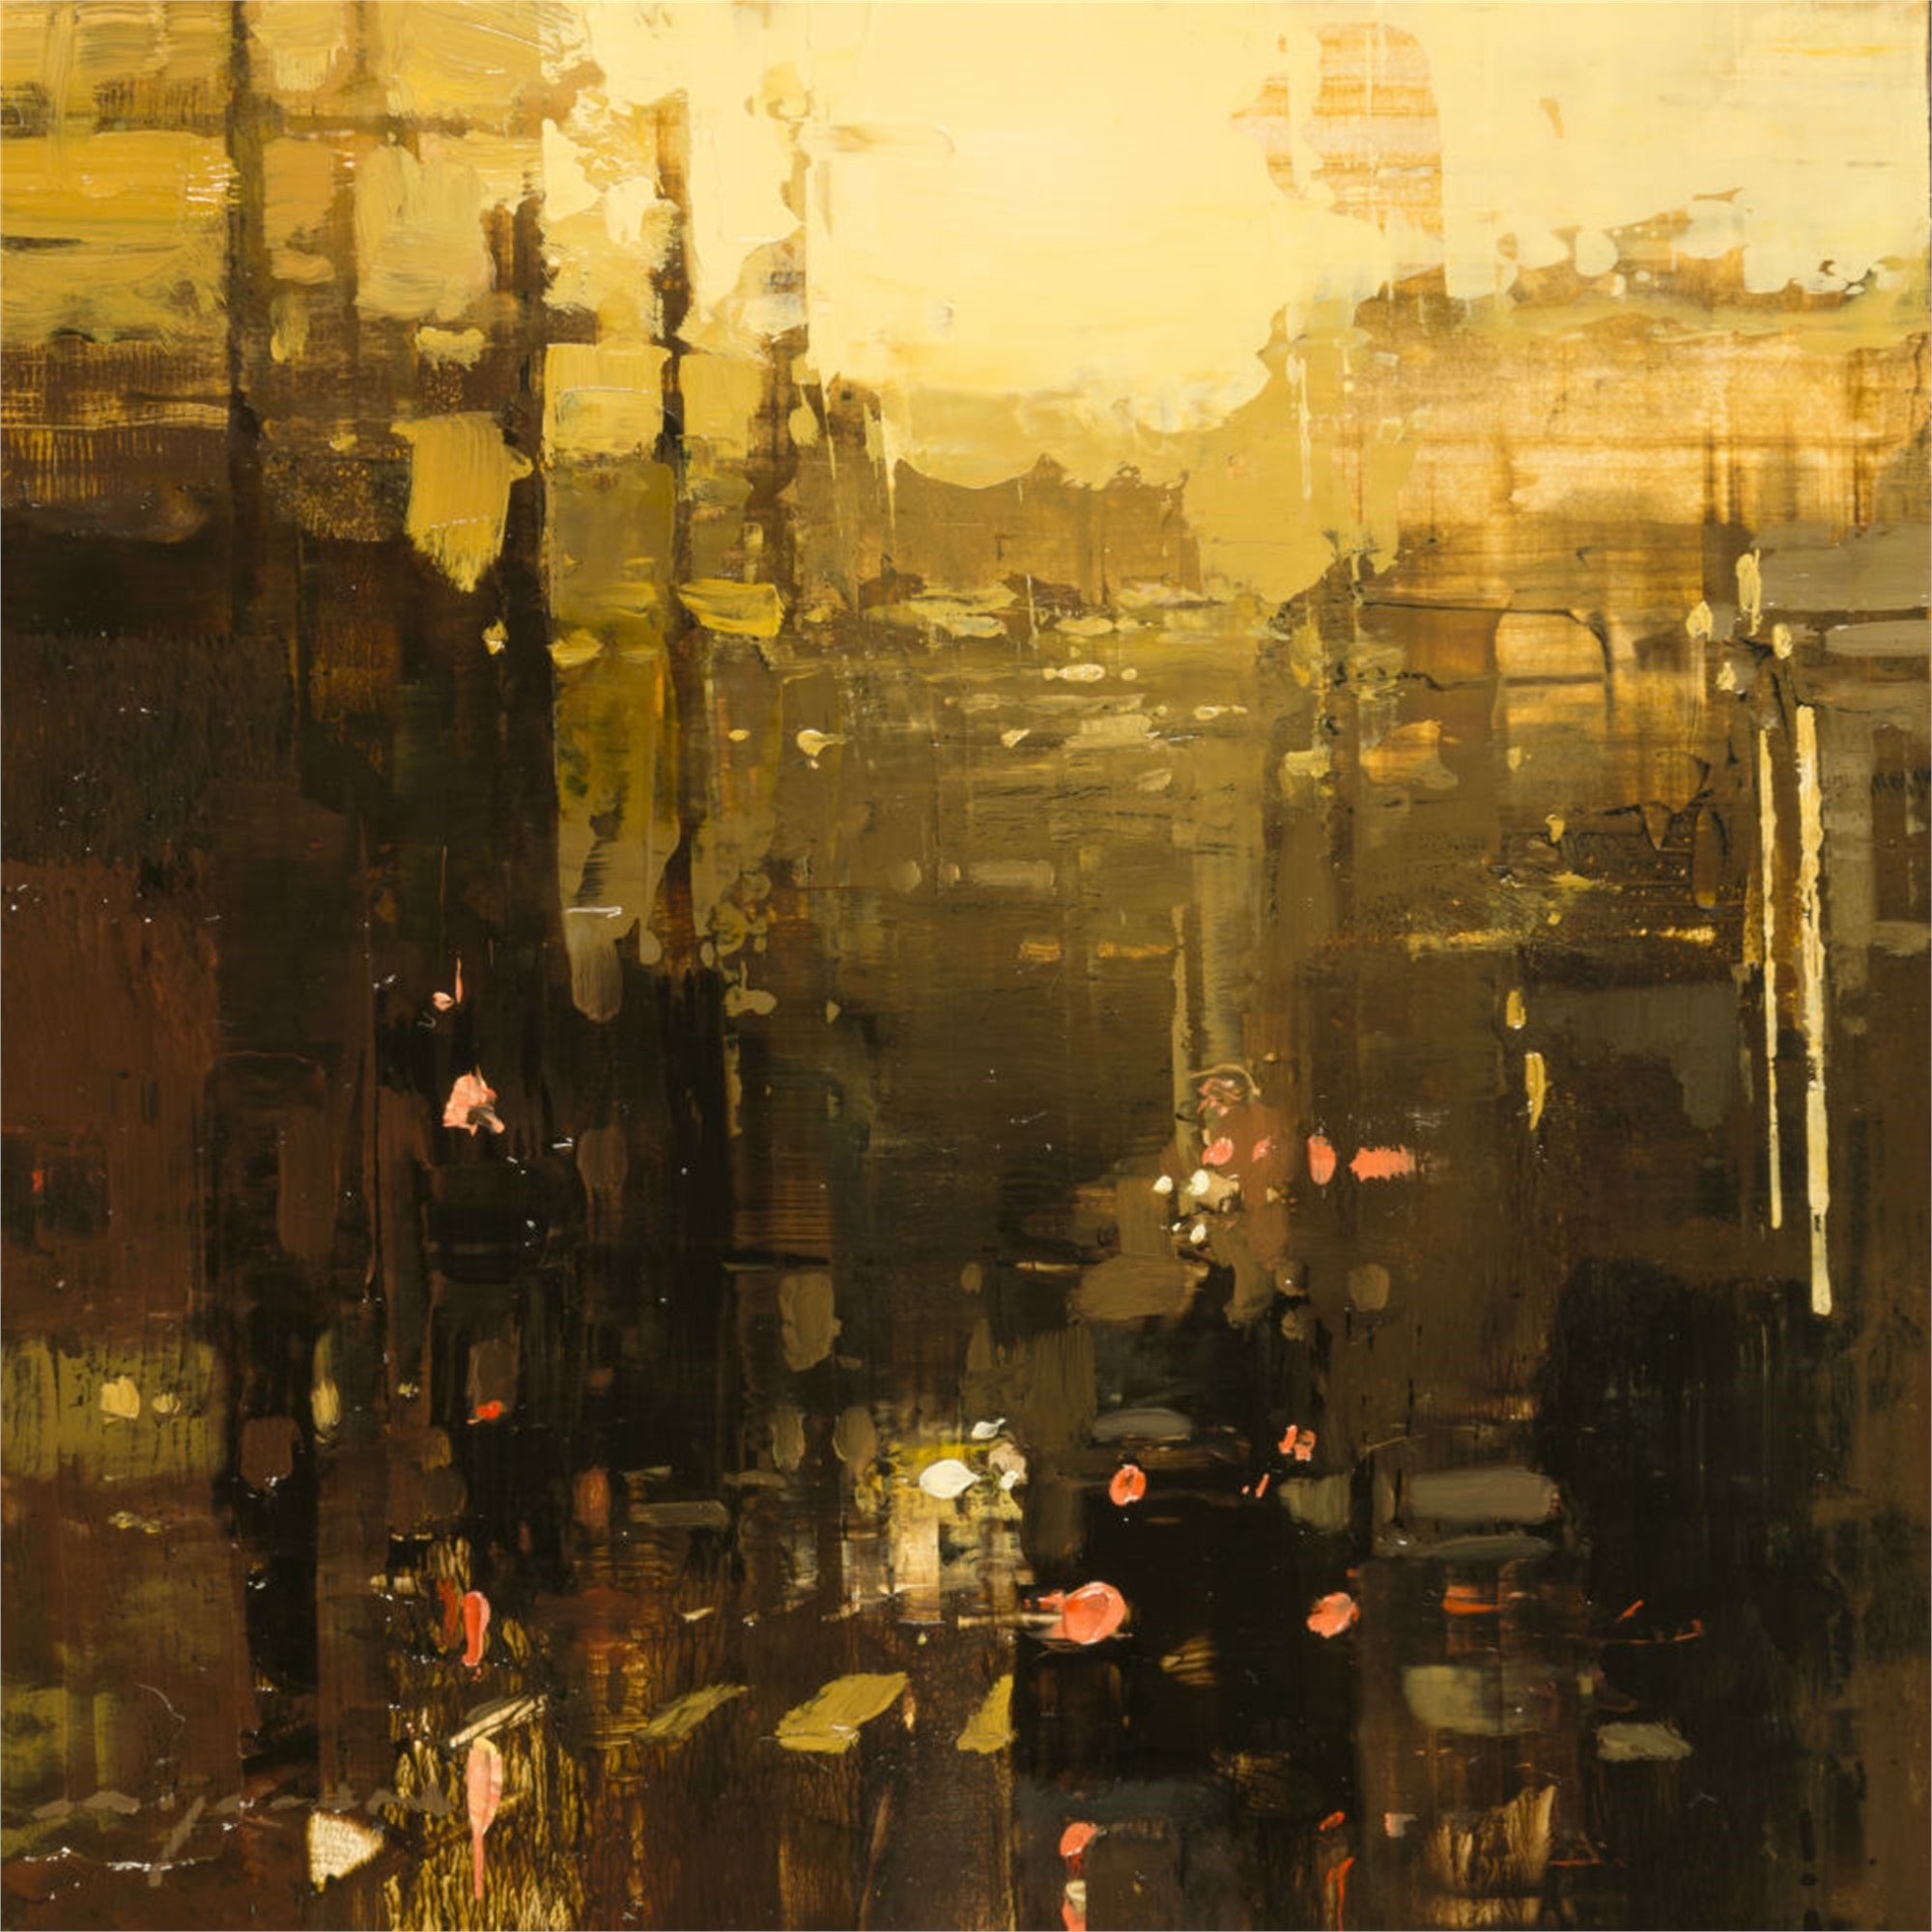 Cityscape - Composed Form Study no. 26 by Jeremy Mann